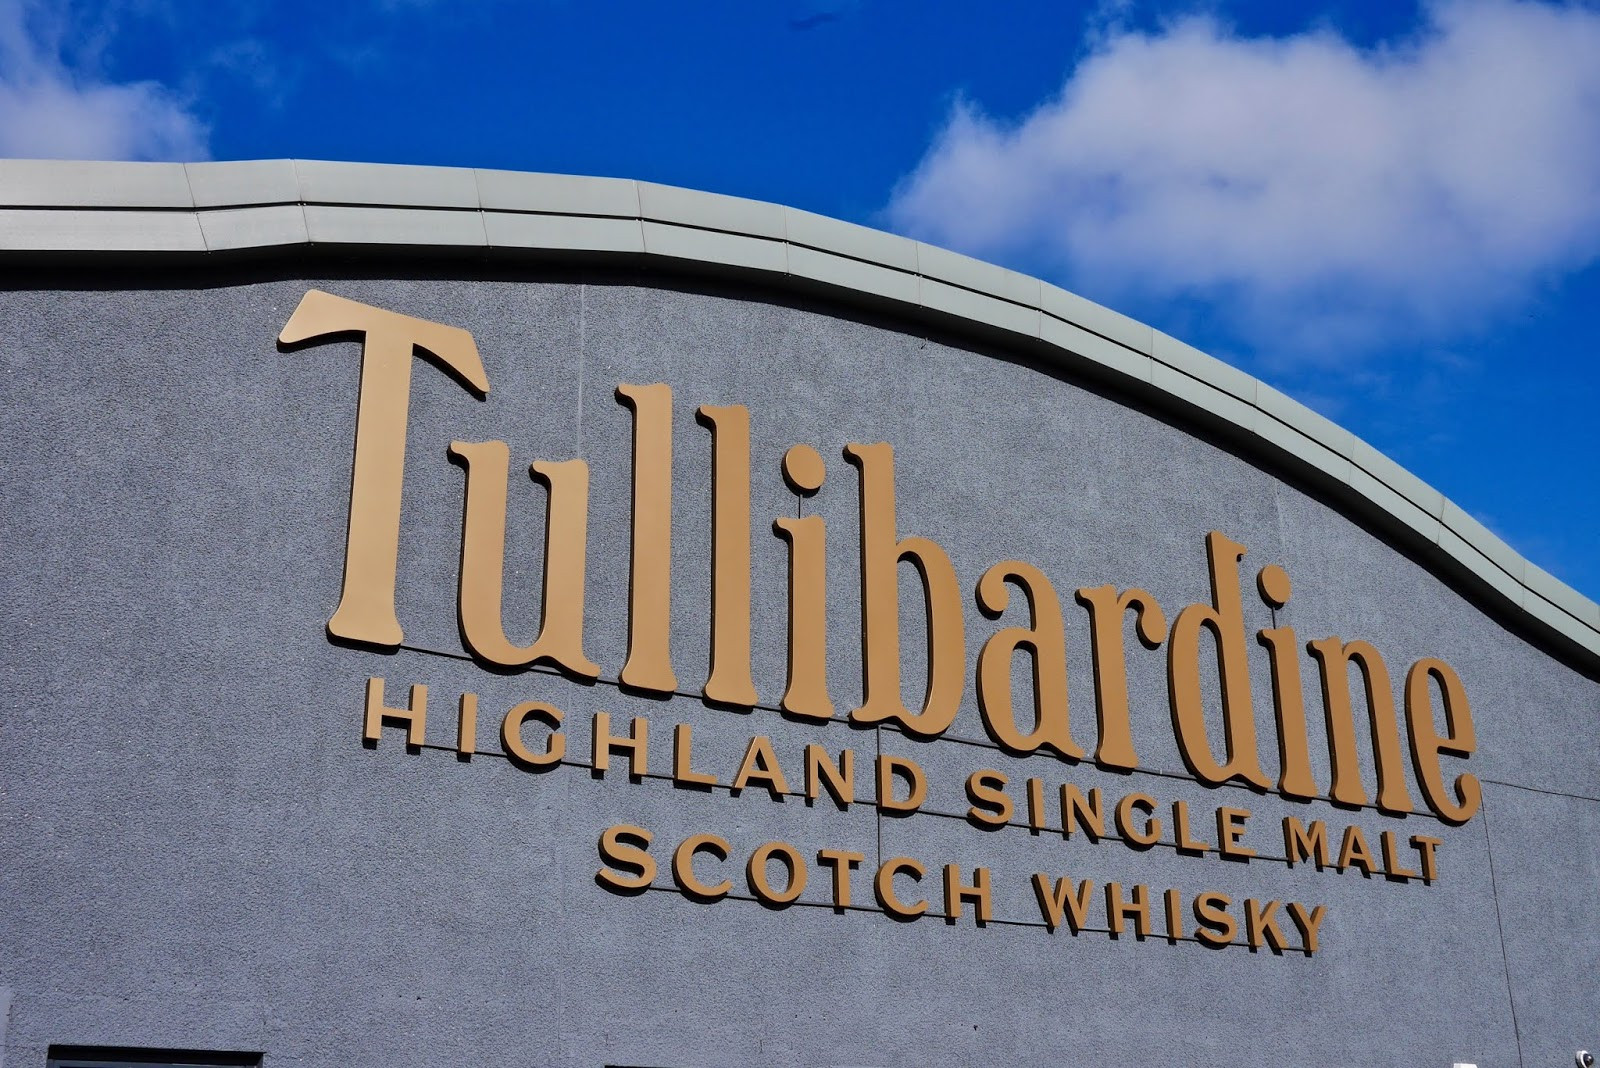 Tullibardine Whisky Distillery by cal mctravels